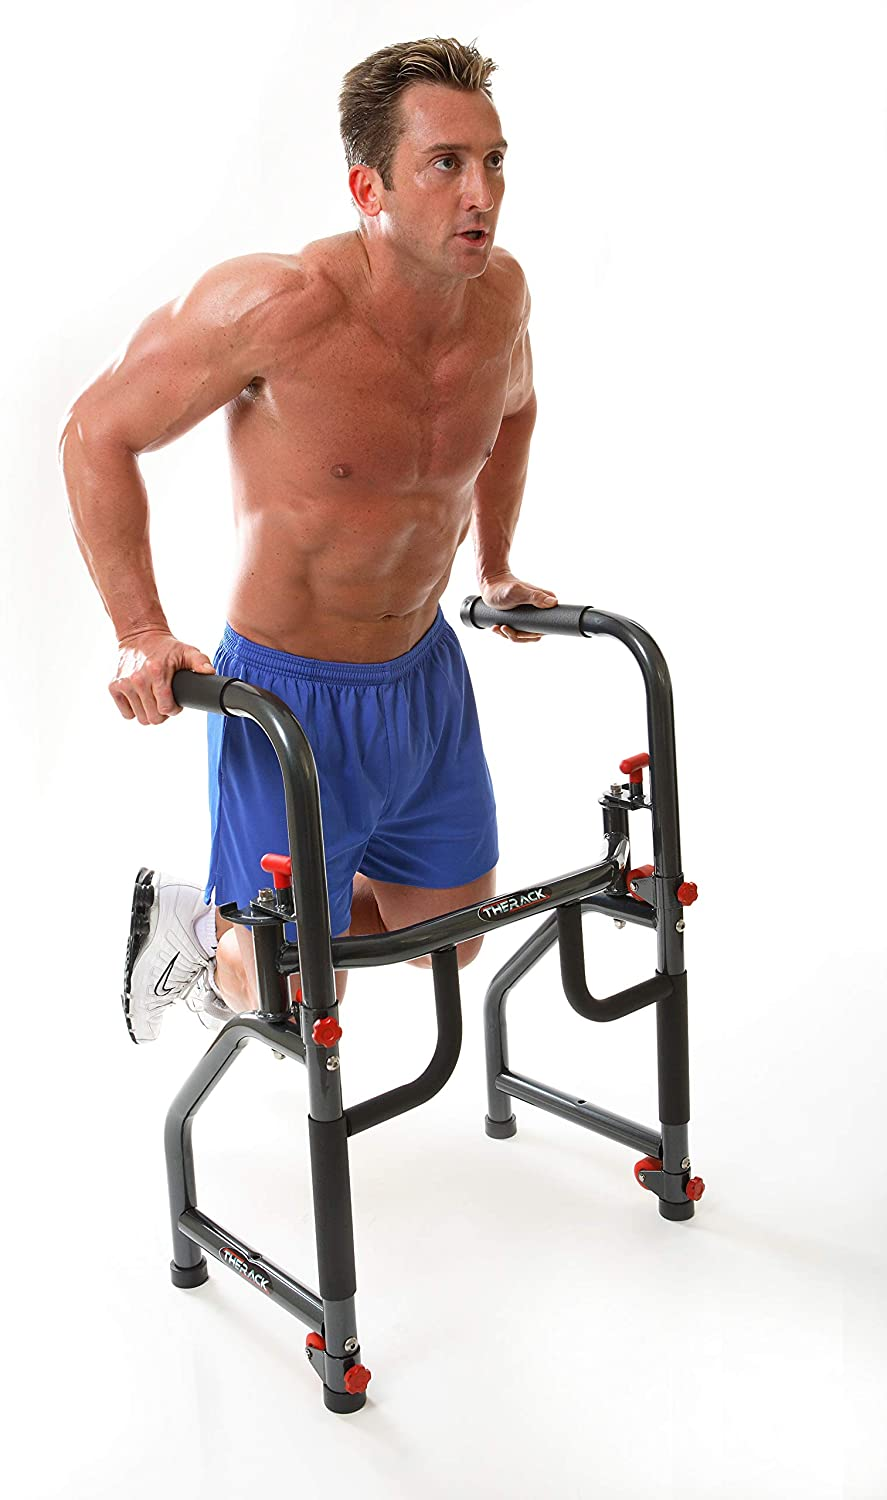 man using therack workout station the rack